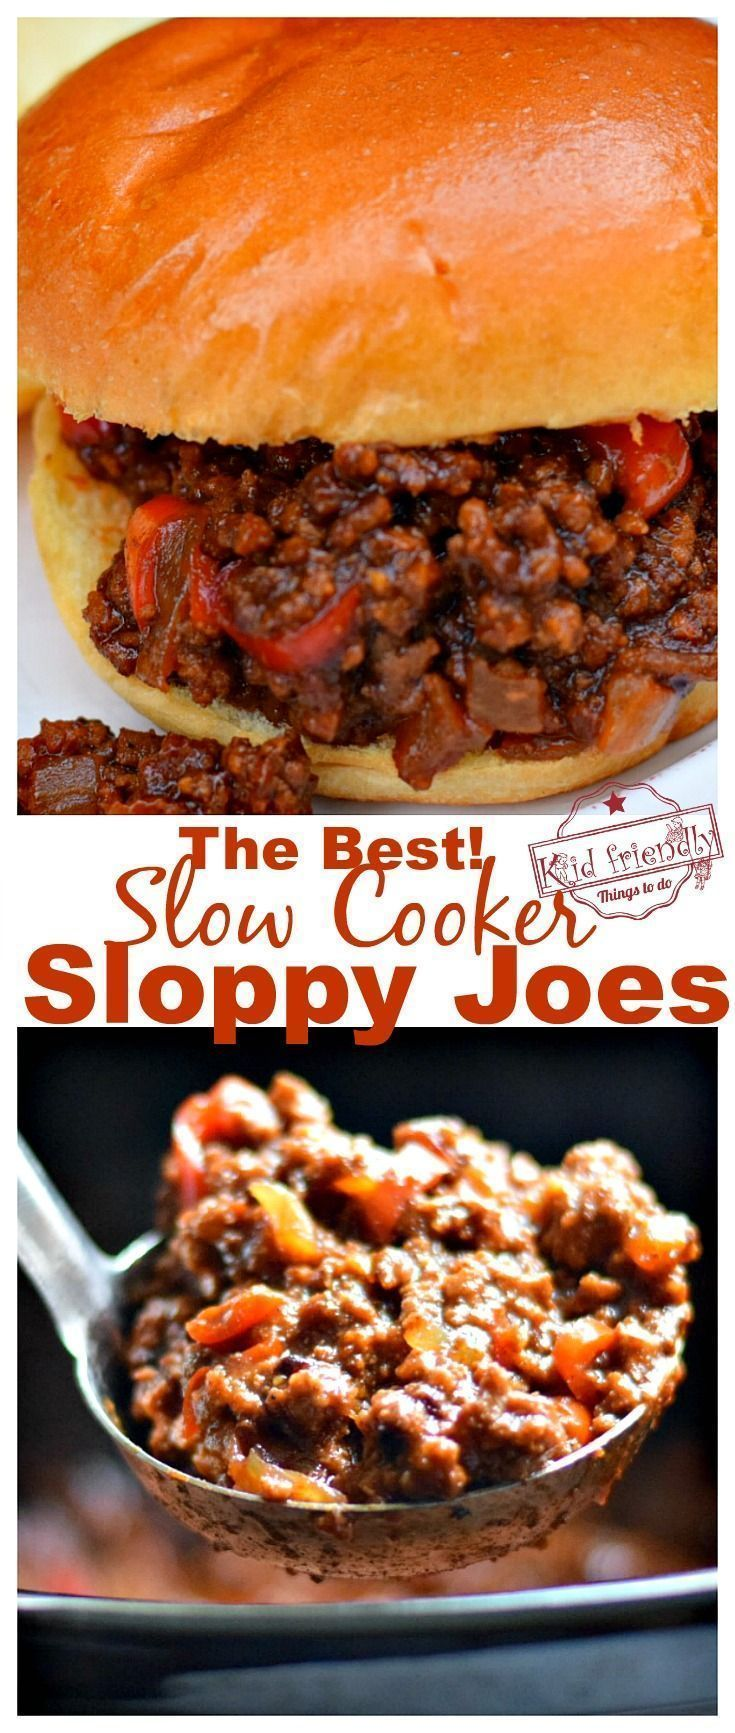 The Best Slow Cooker Sloppy Joes I've Ever Had! - Easy images